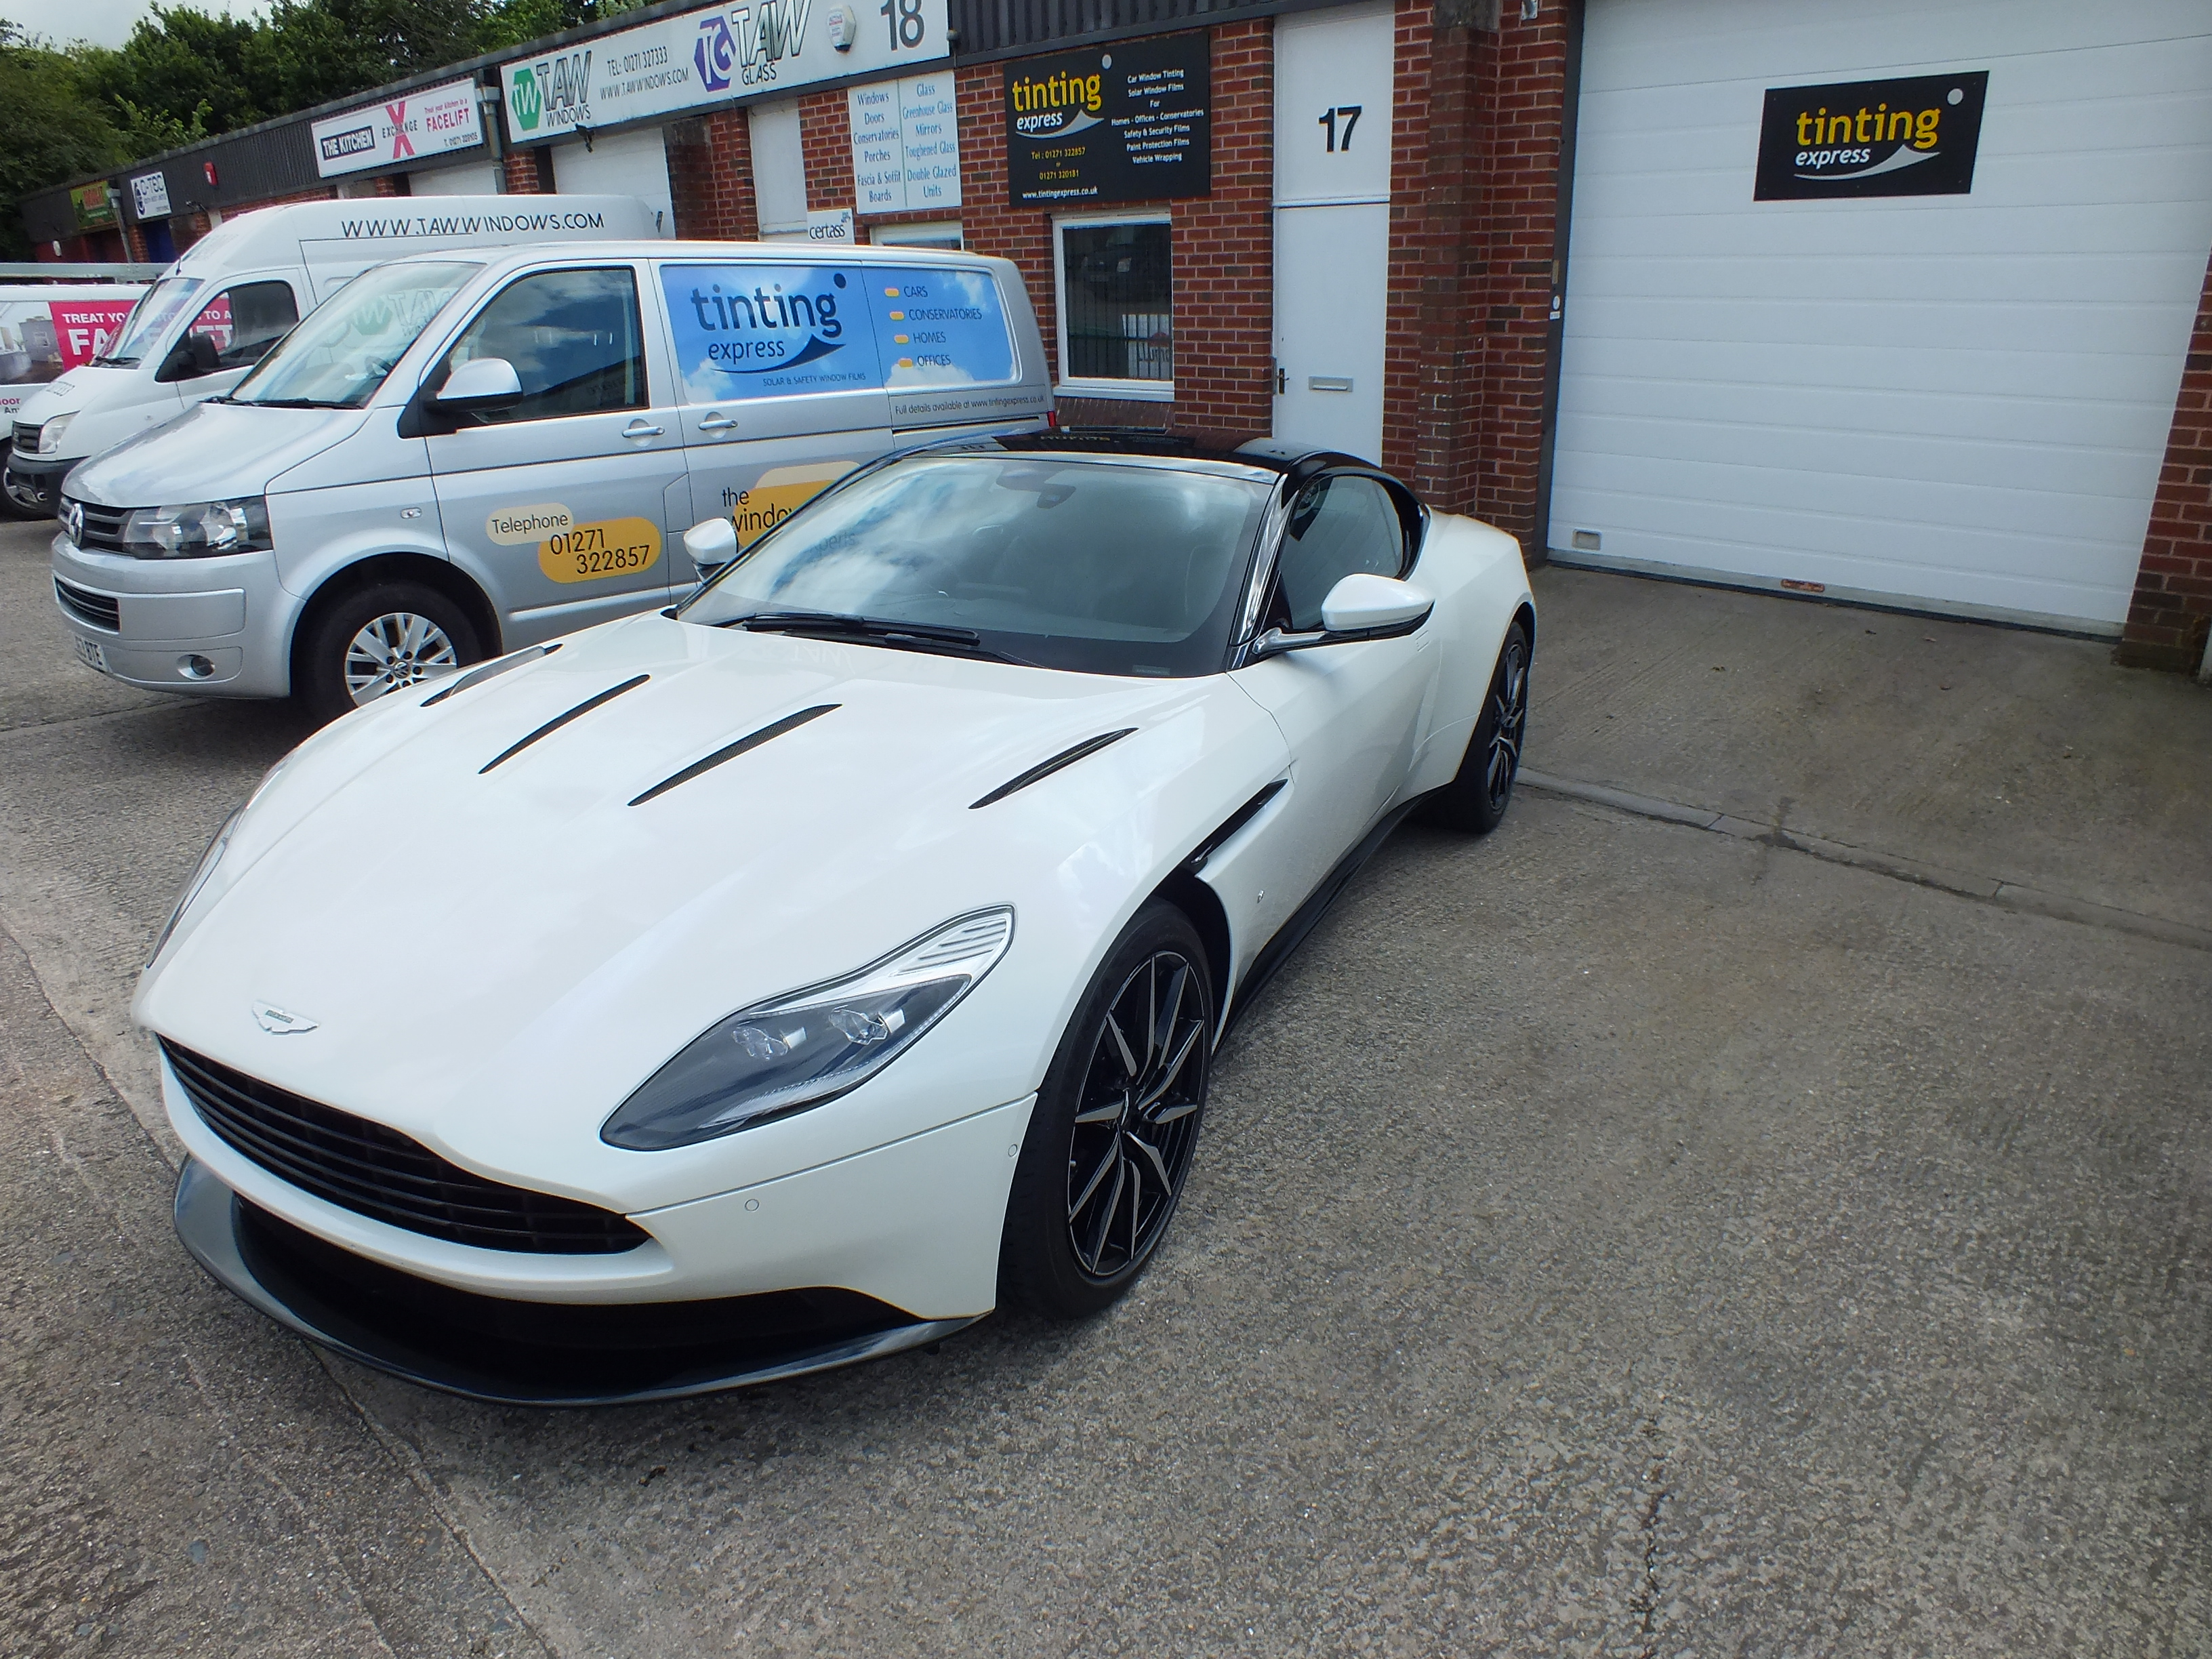 Completed Paint Protection Film application on a DB11 Aston Martin. Tinting Express Barnstaple